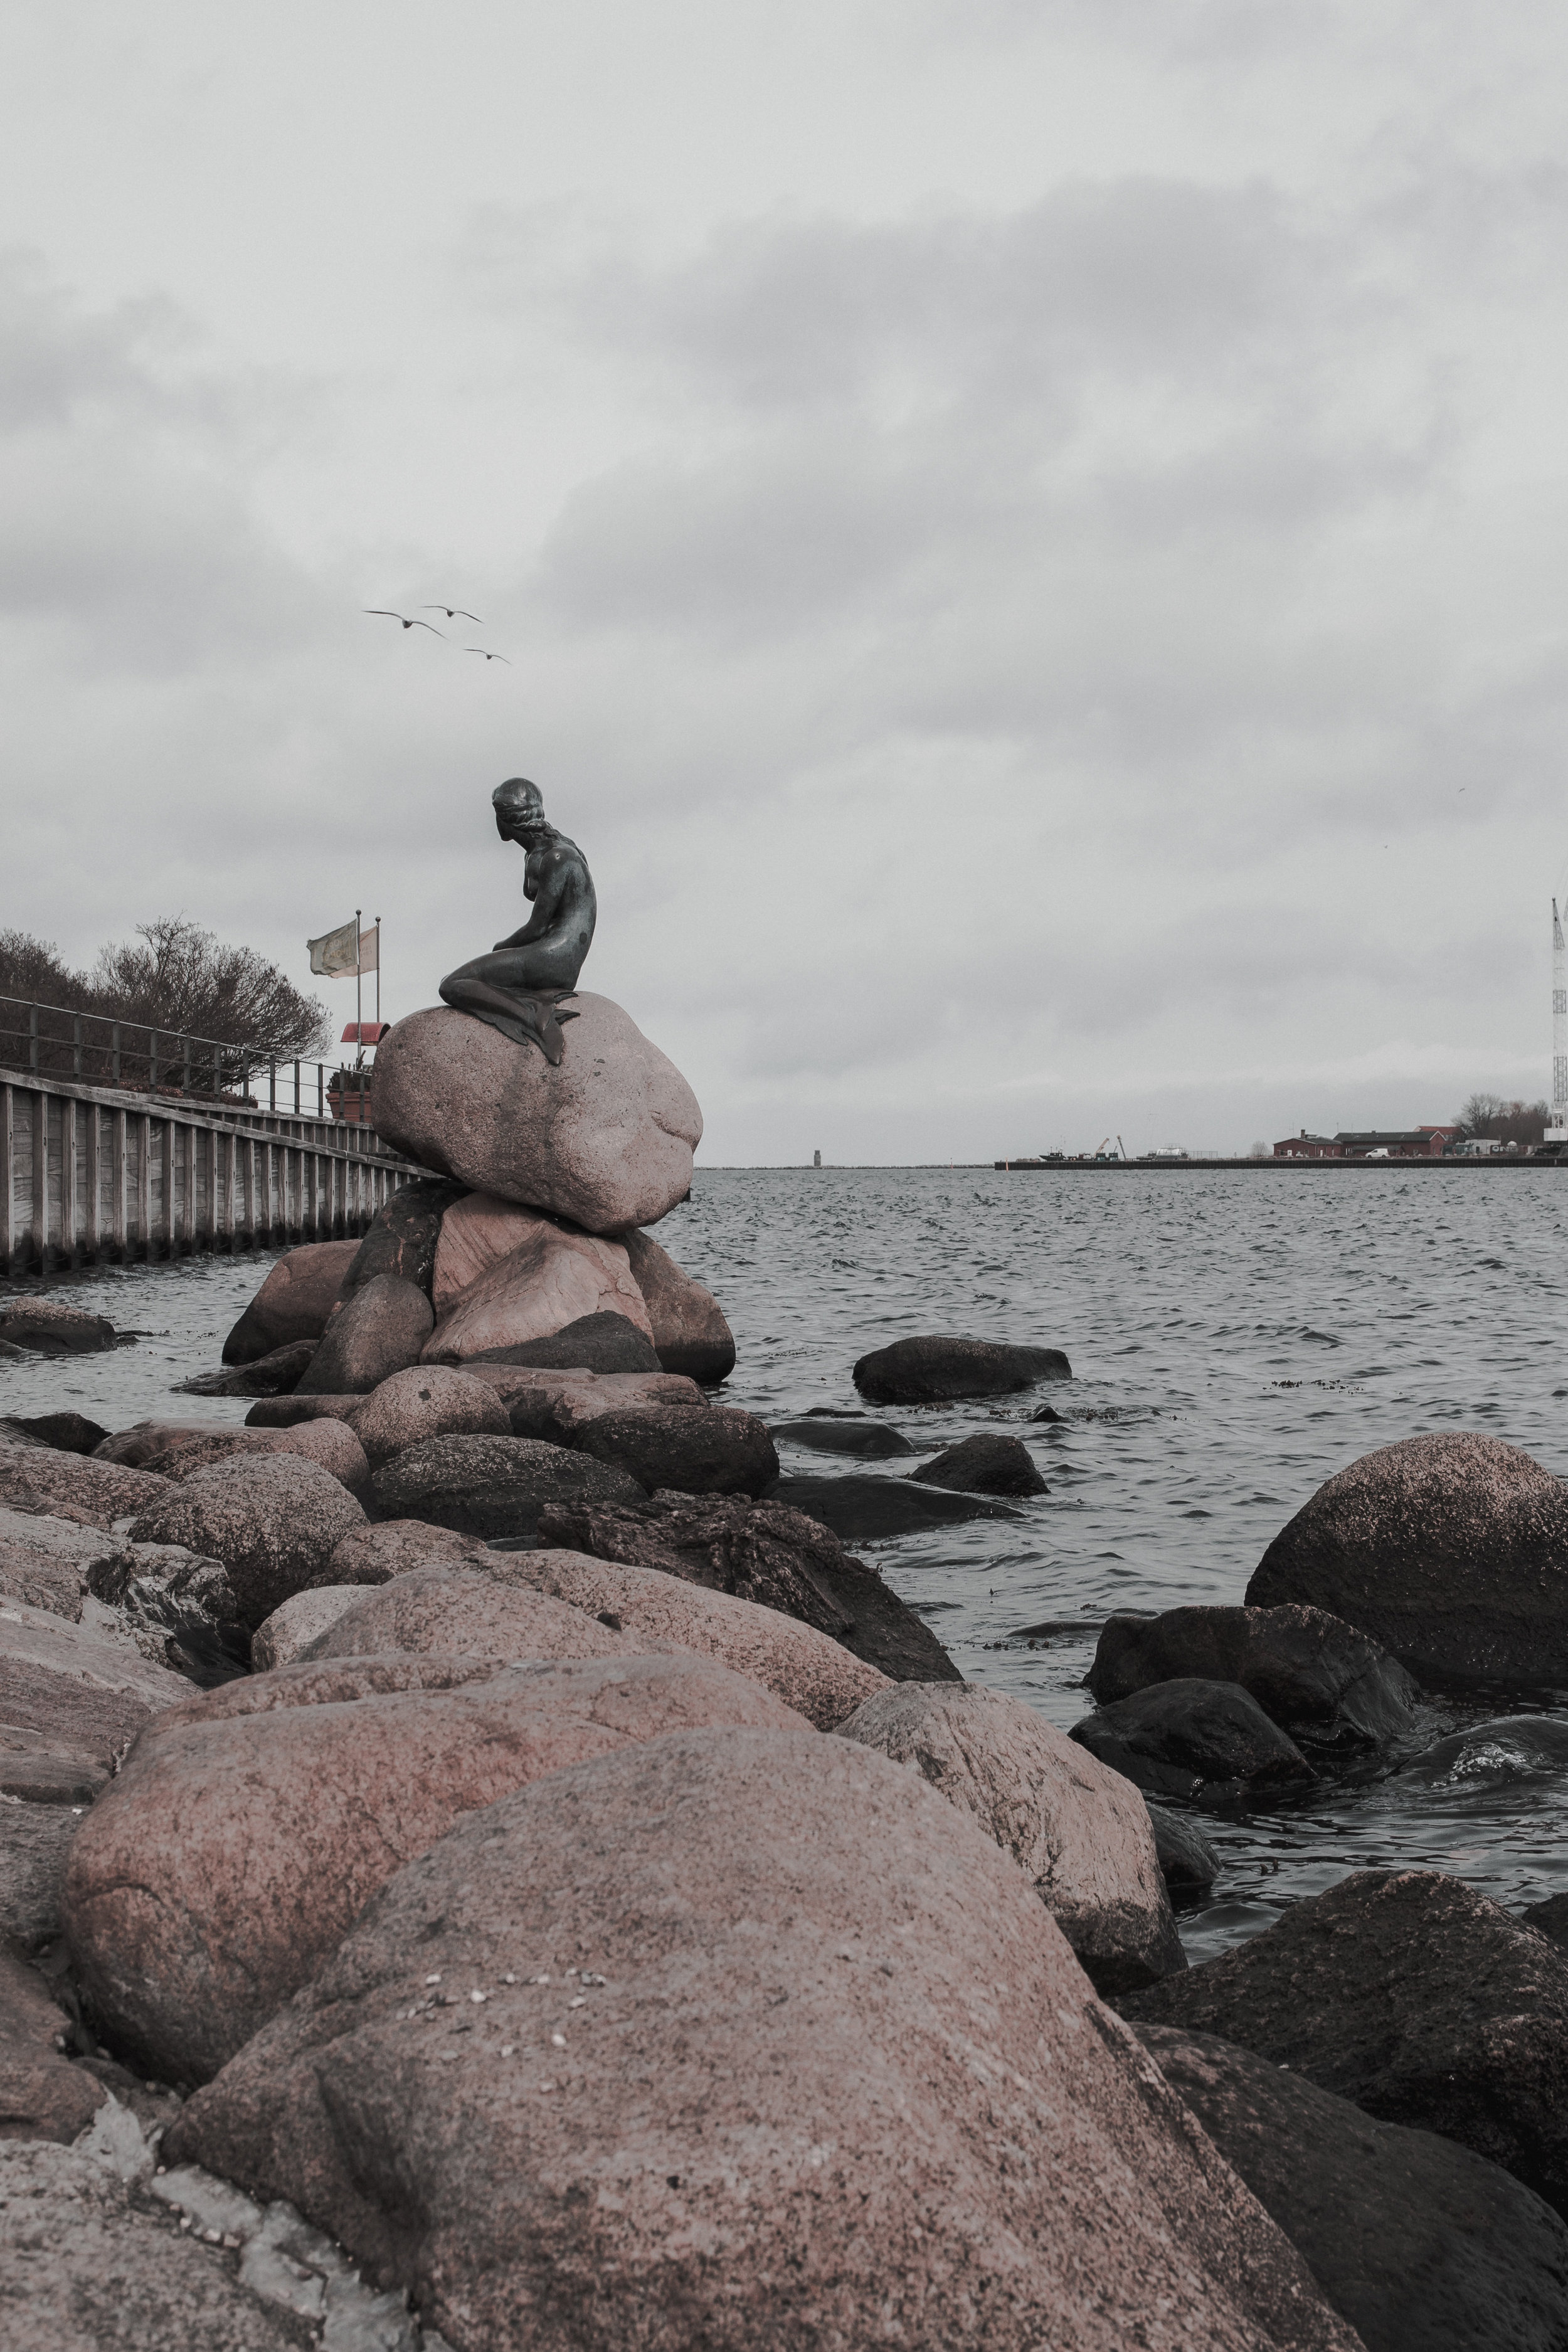 10 Facts About Denmark article. Image of the Little Mermaid statue.jpg